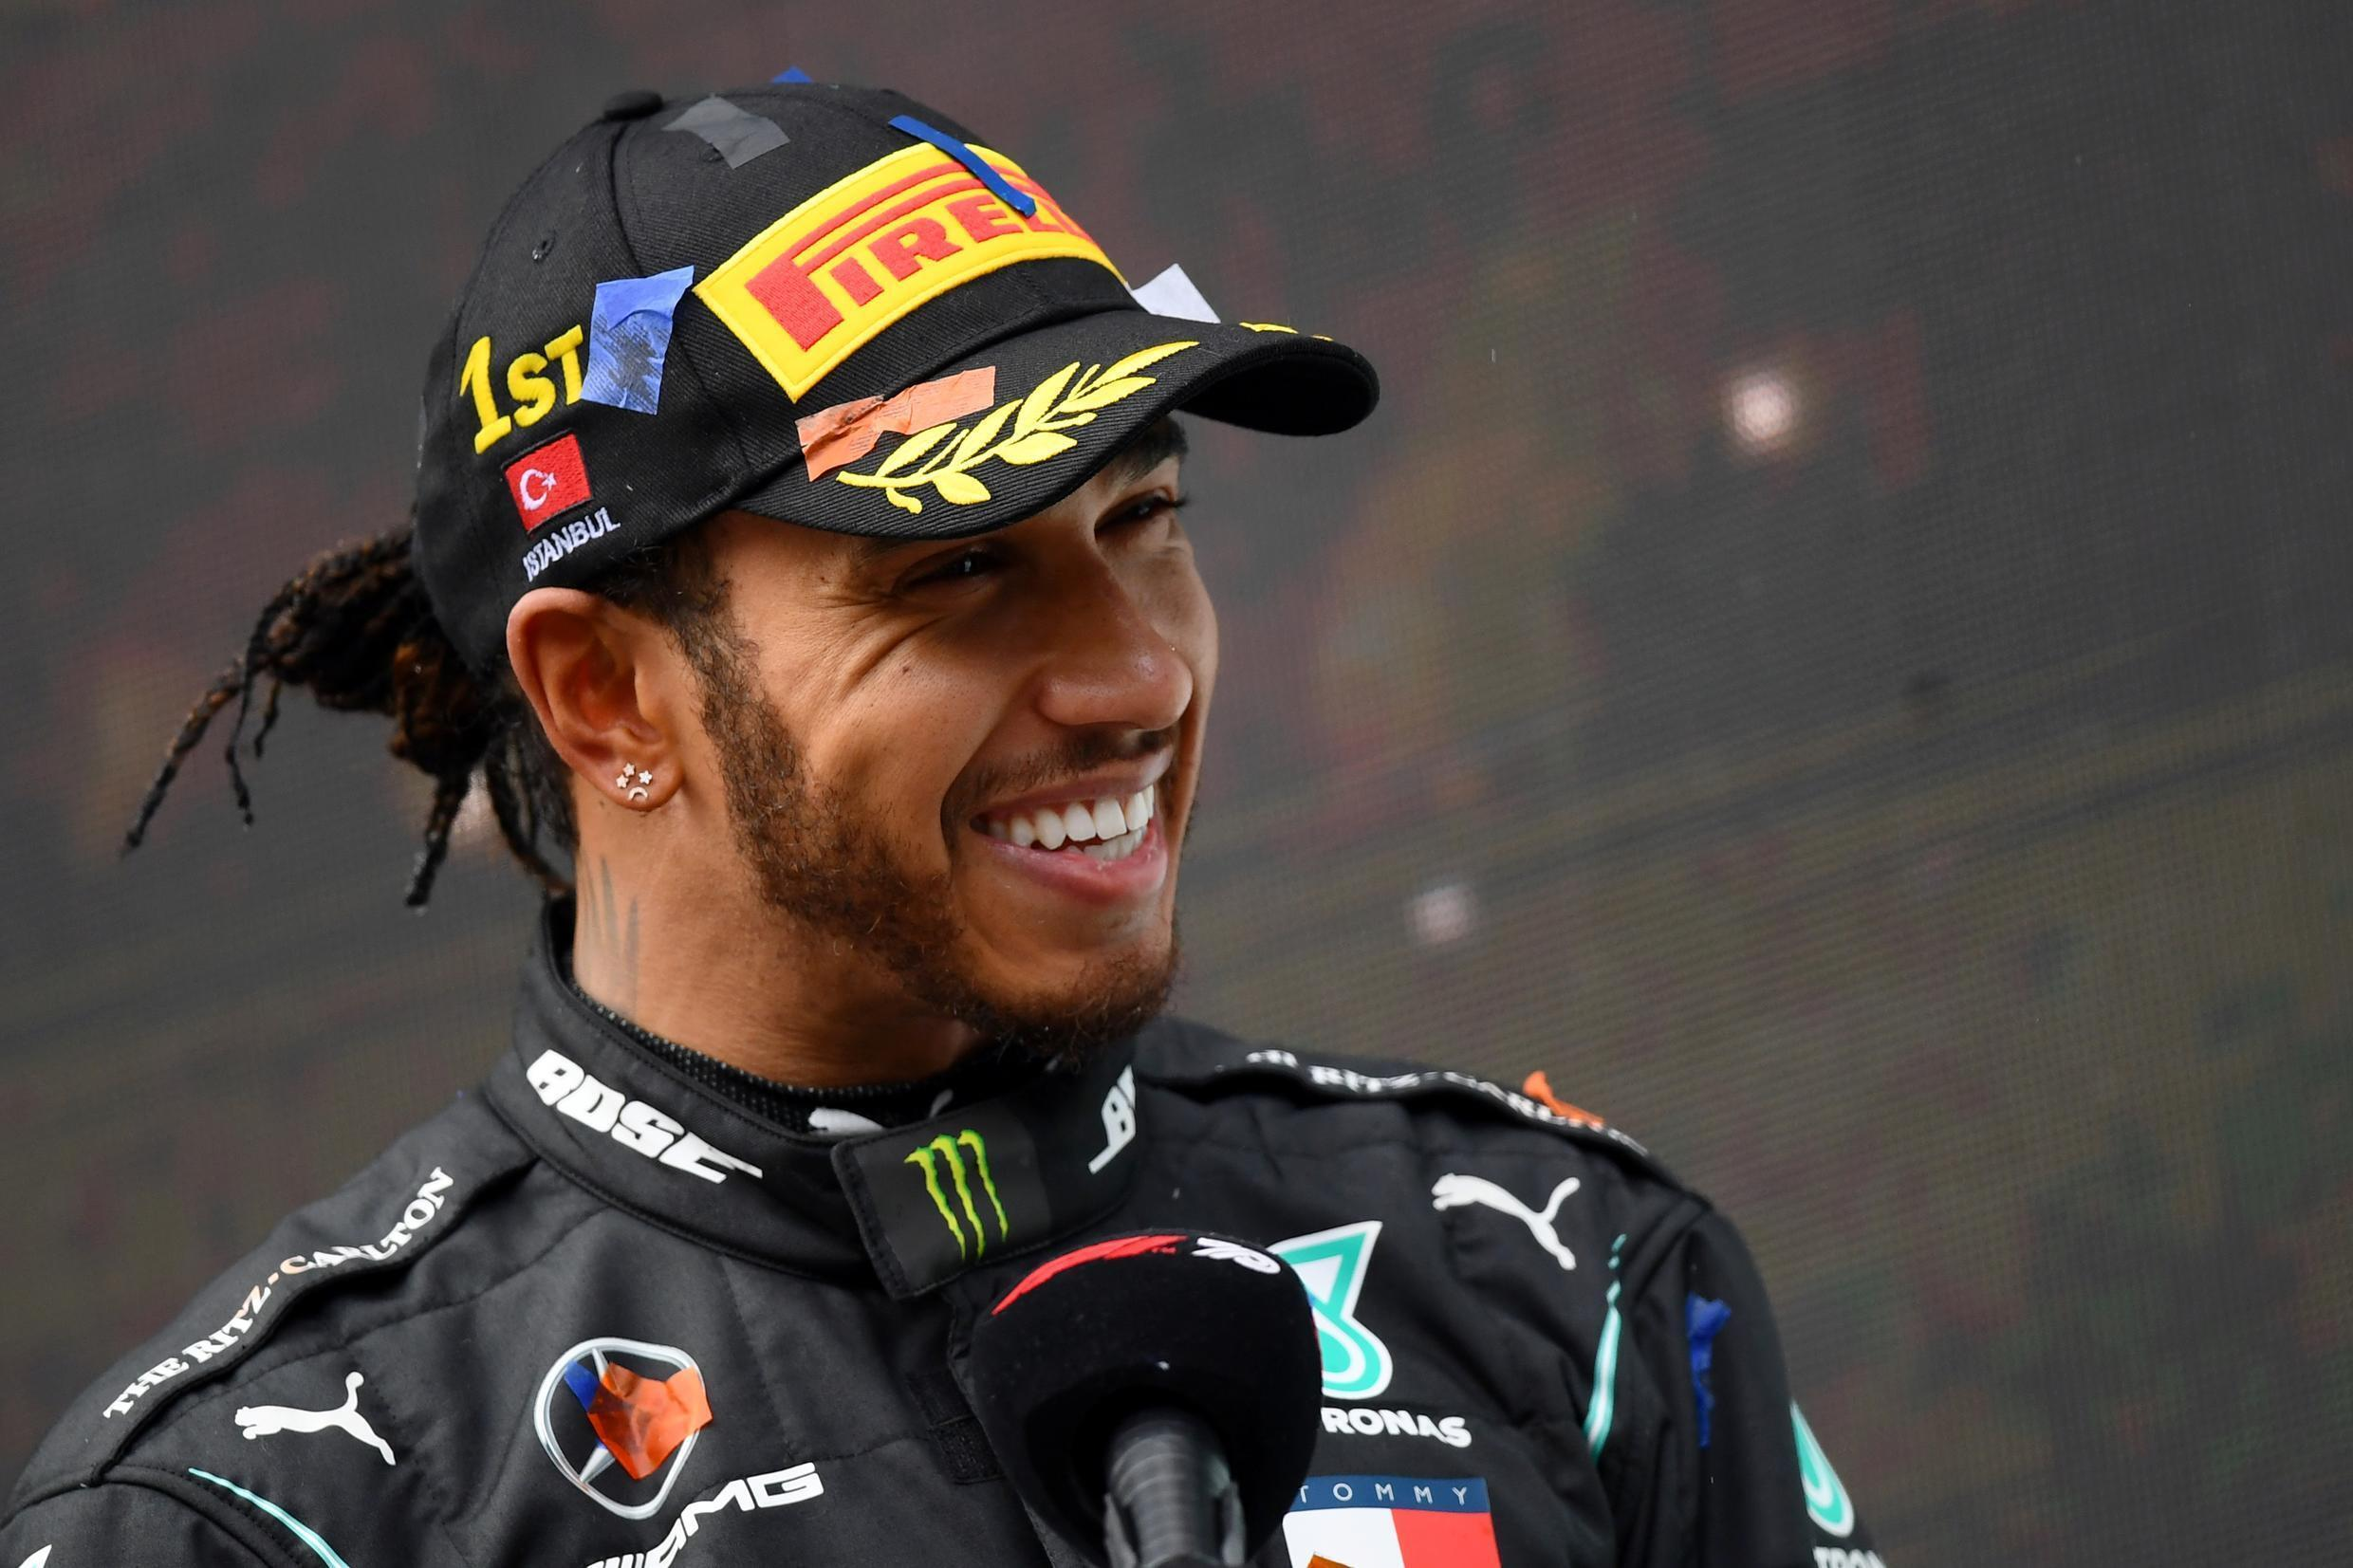 Lewis Hamilton started driving for Mercedes in 2013 and has won six world titles with the stable.